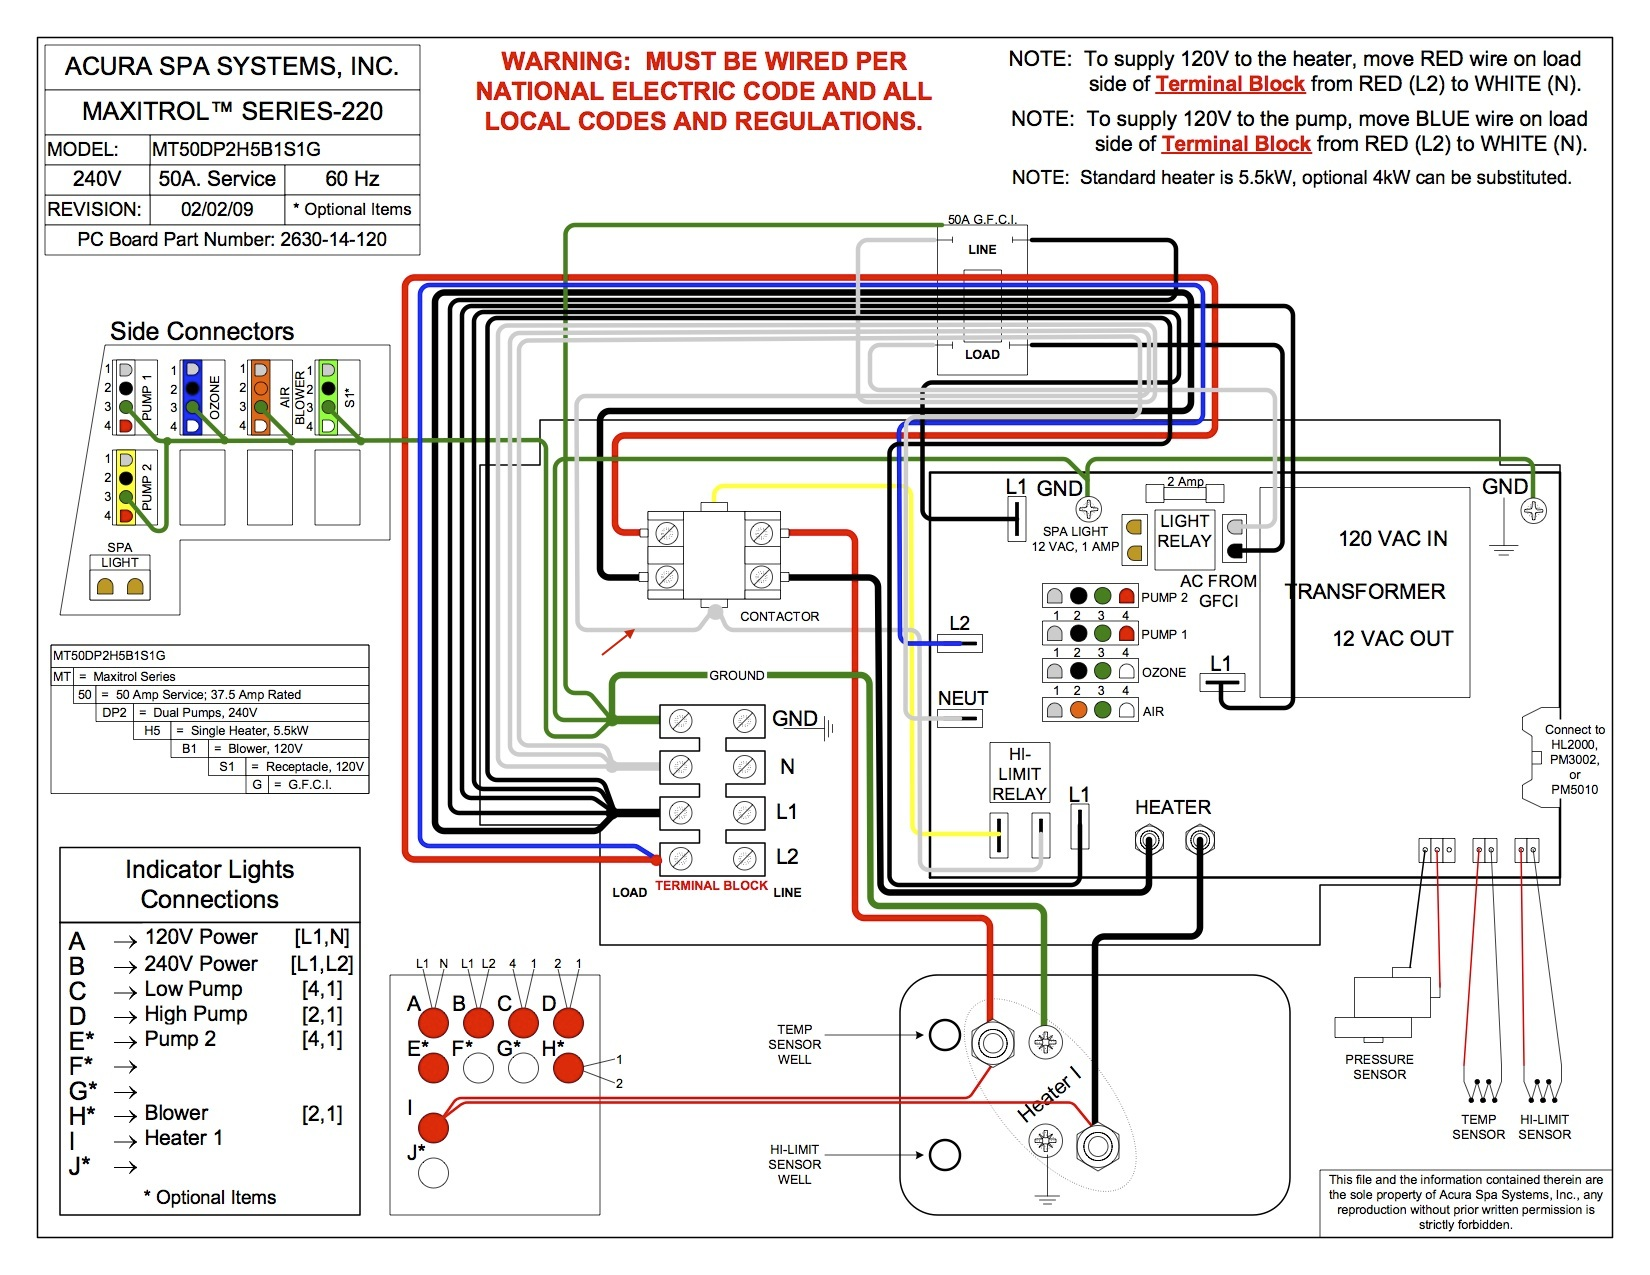 Acura Spa Wiring Diagram MT50DP2H5B1S1G no power to spa pump twinsprings research institute thermospa wiring diagram at crackthecode.co